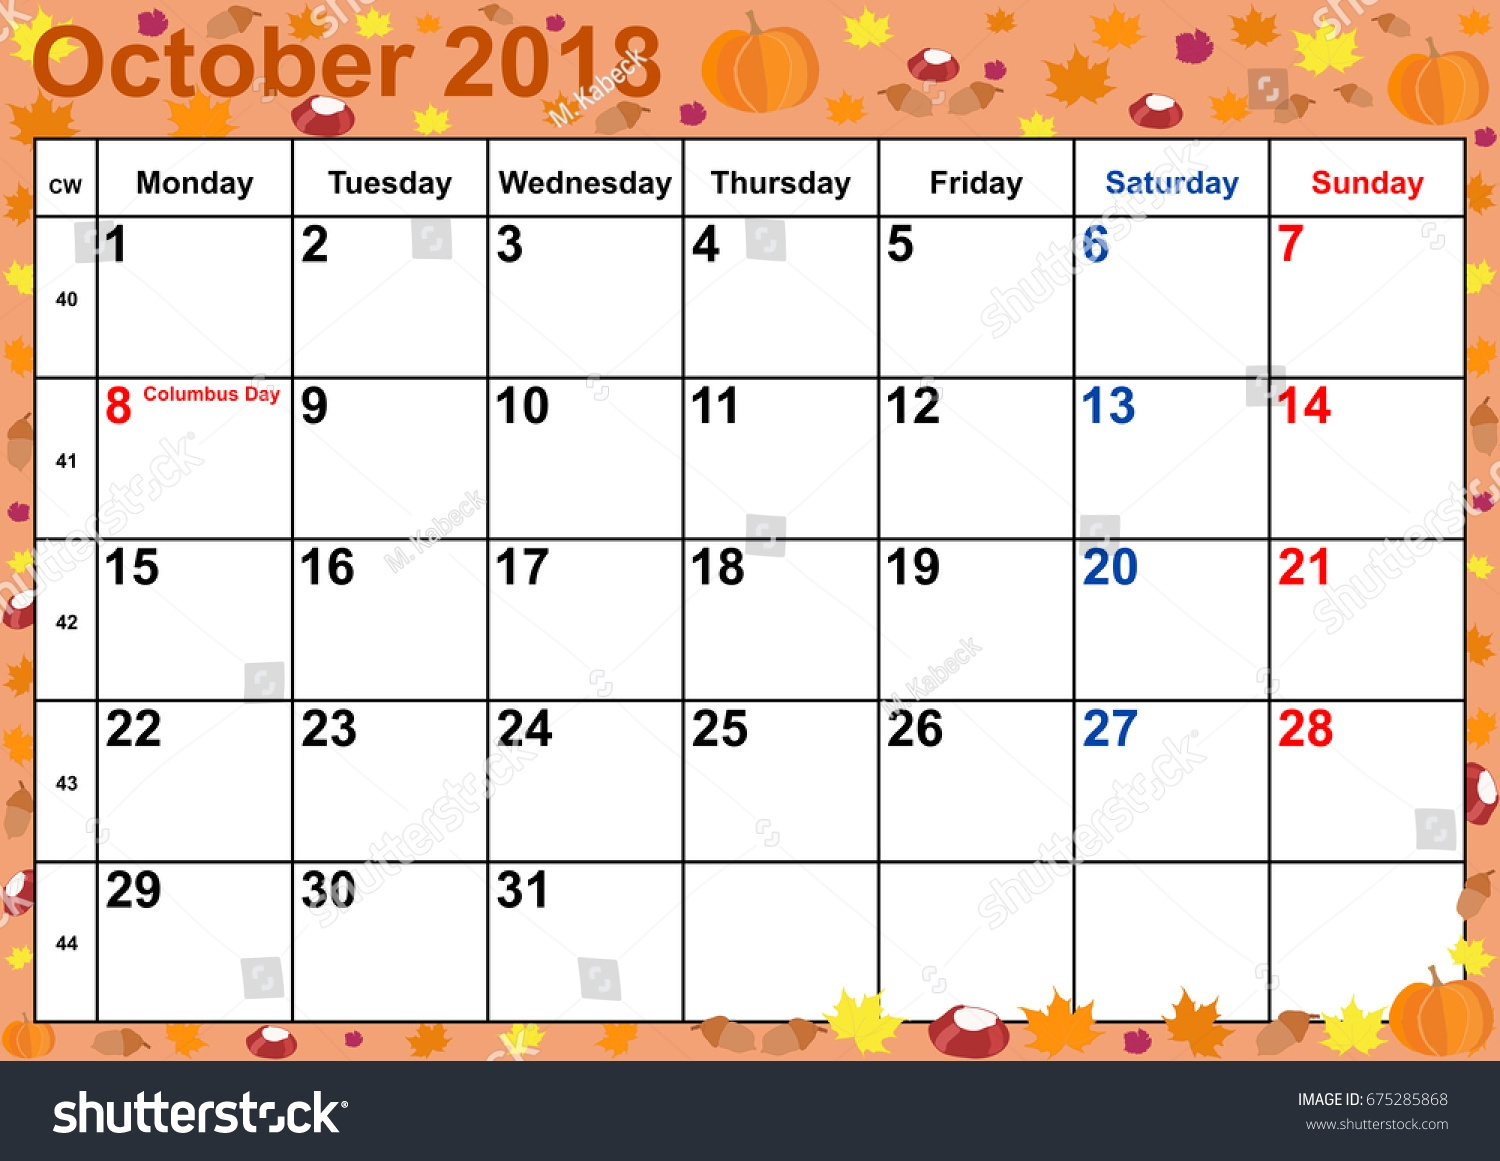 calendar 2018 month october public holidays stock vector royalty October 2018 Calendar Holidays USA erdferdf